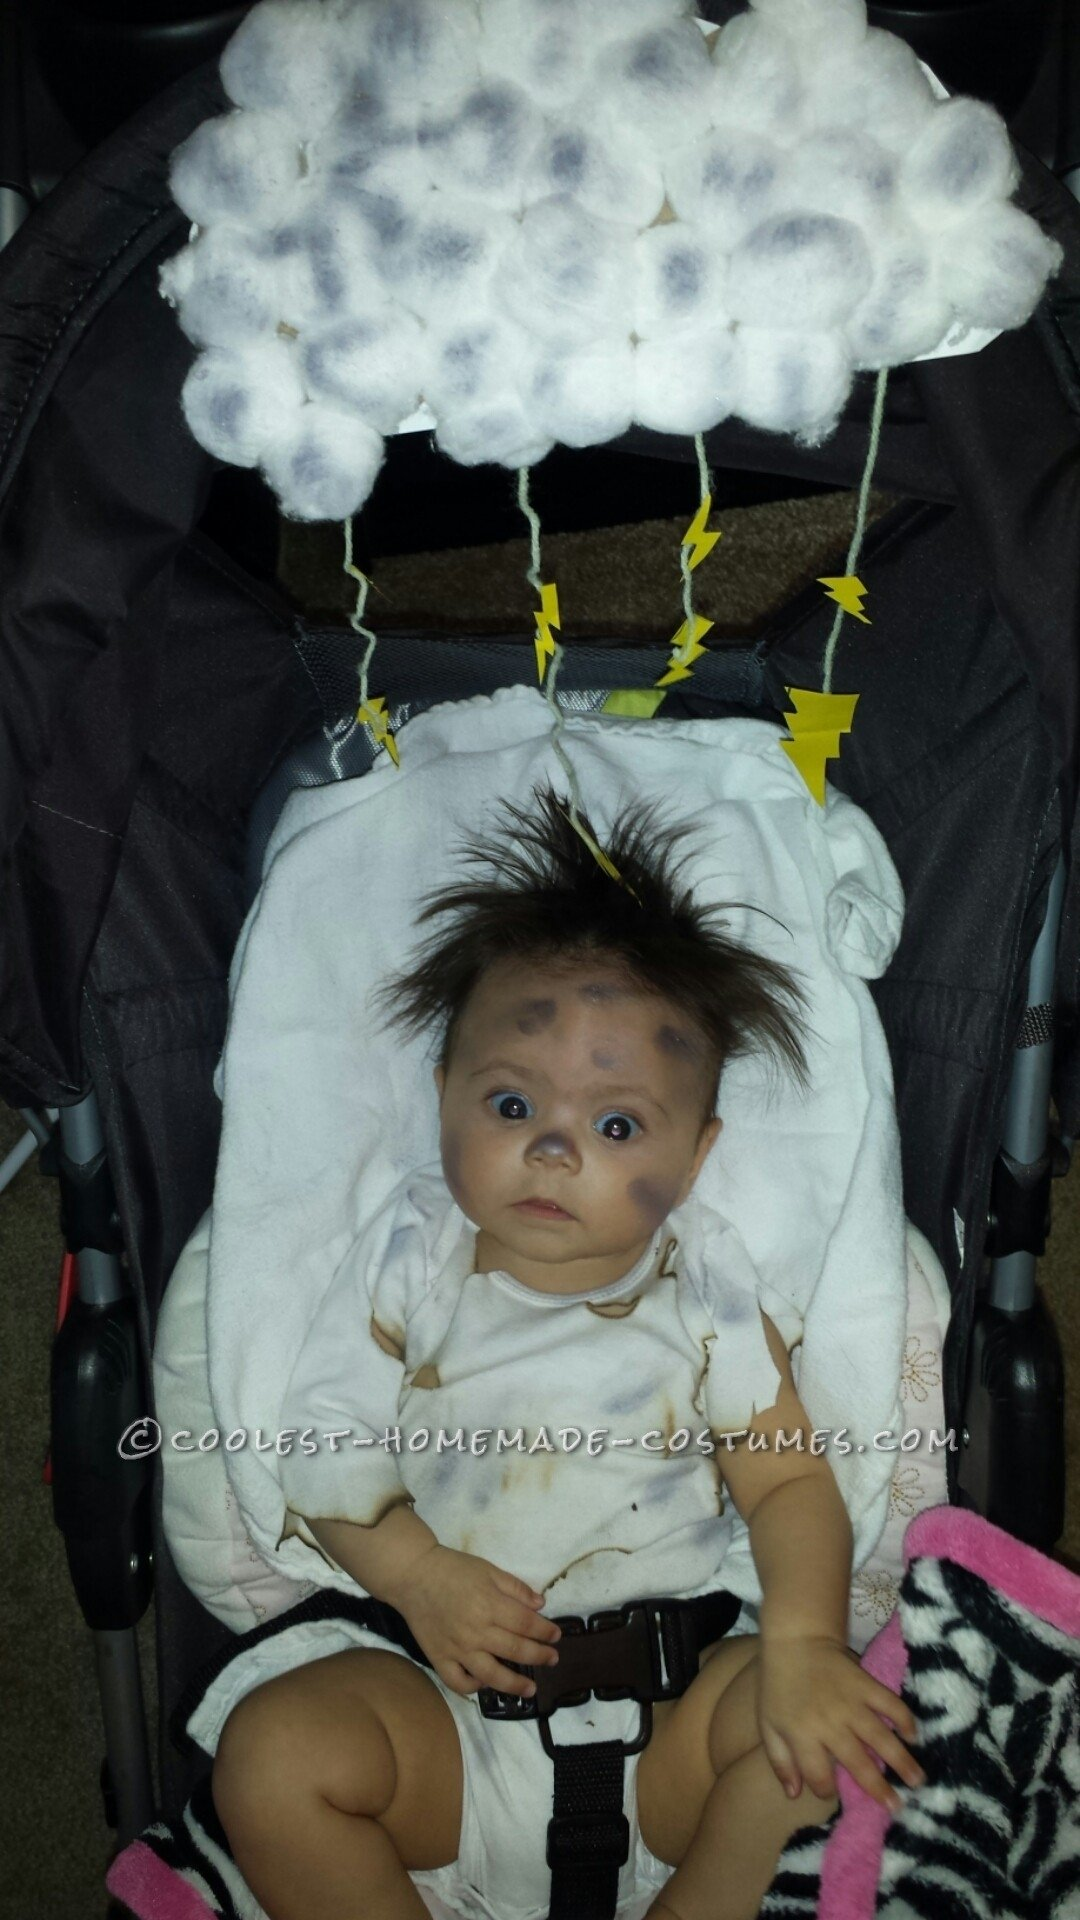 10 Attractive Baby Costume Ideas For Boys strucklightning baby costume baby costumes halloween costume 2020